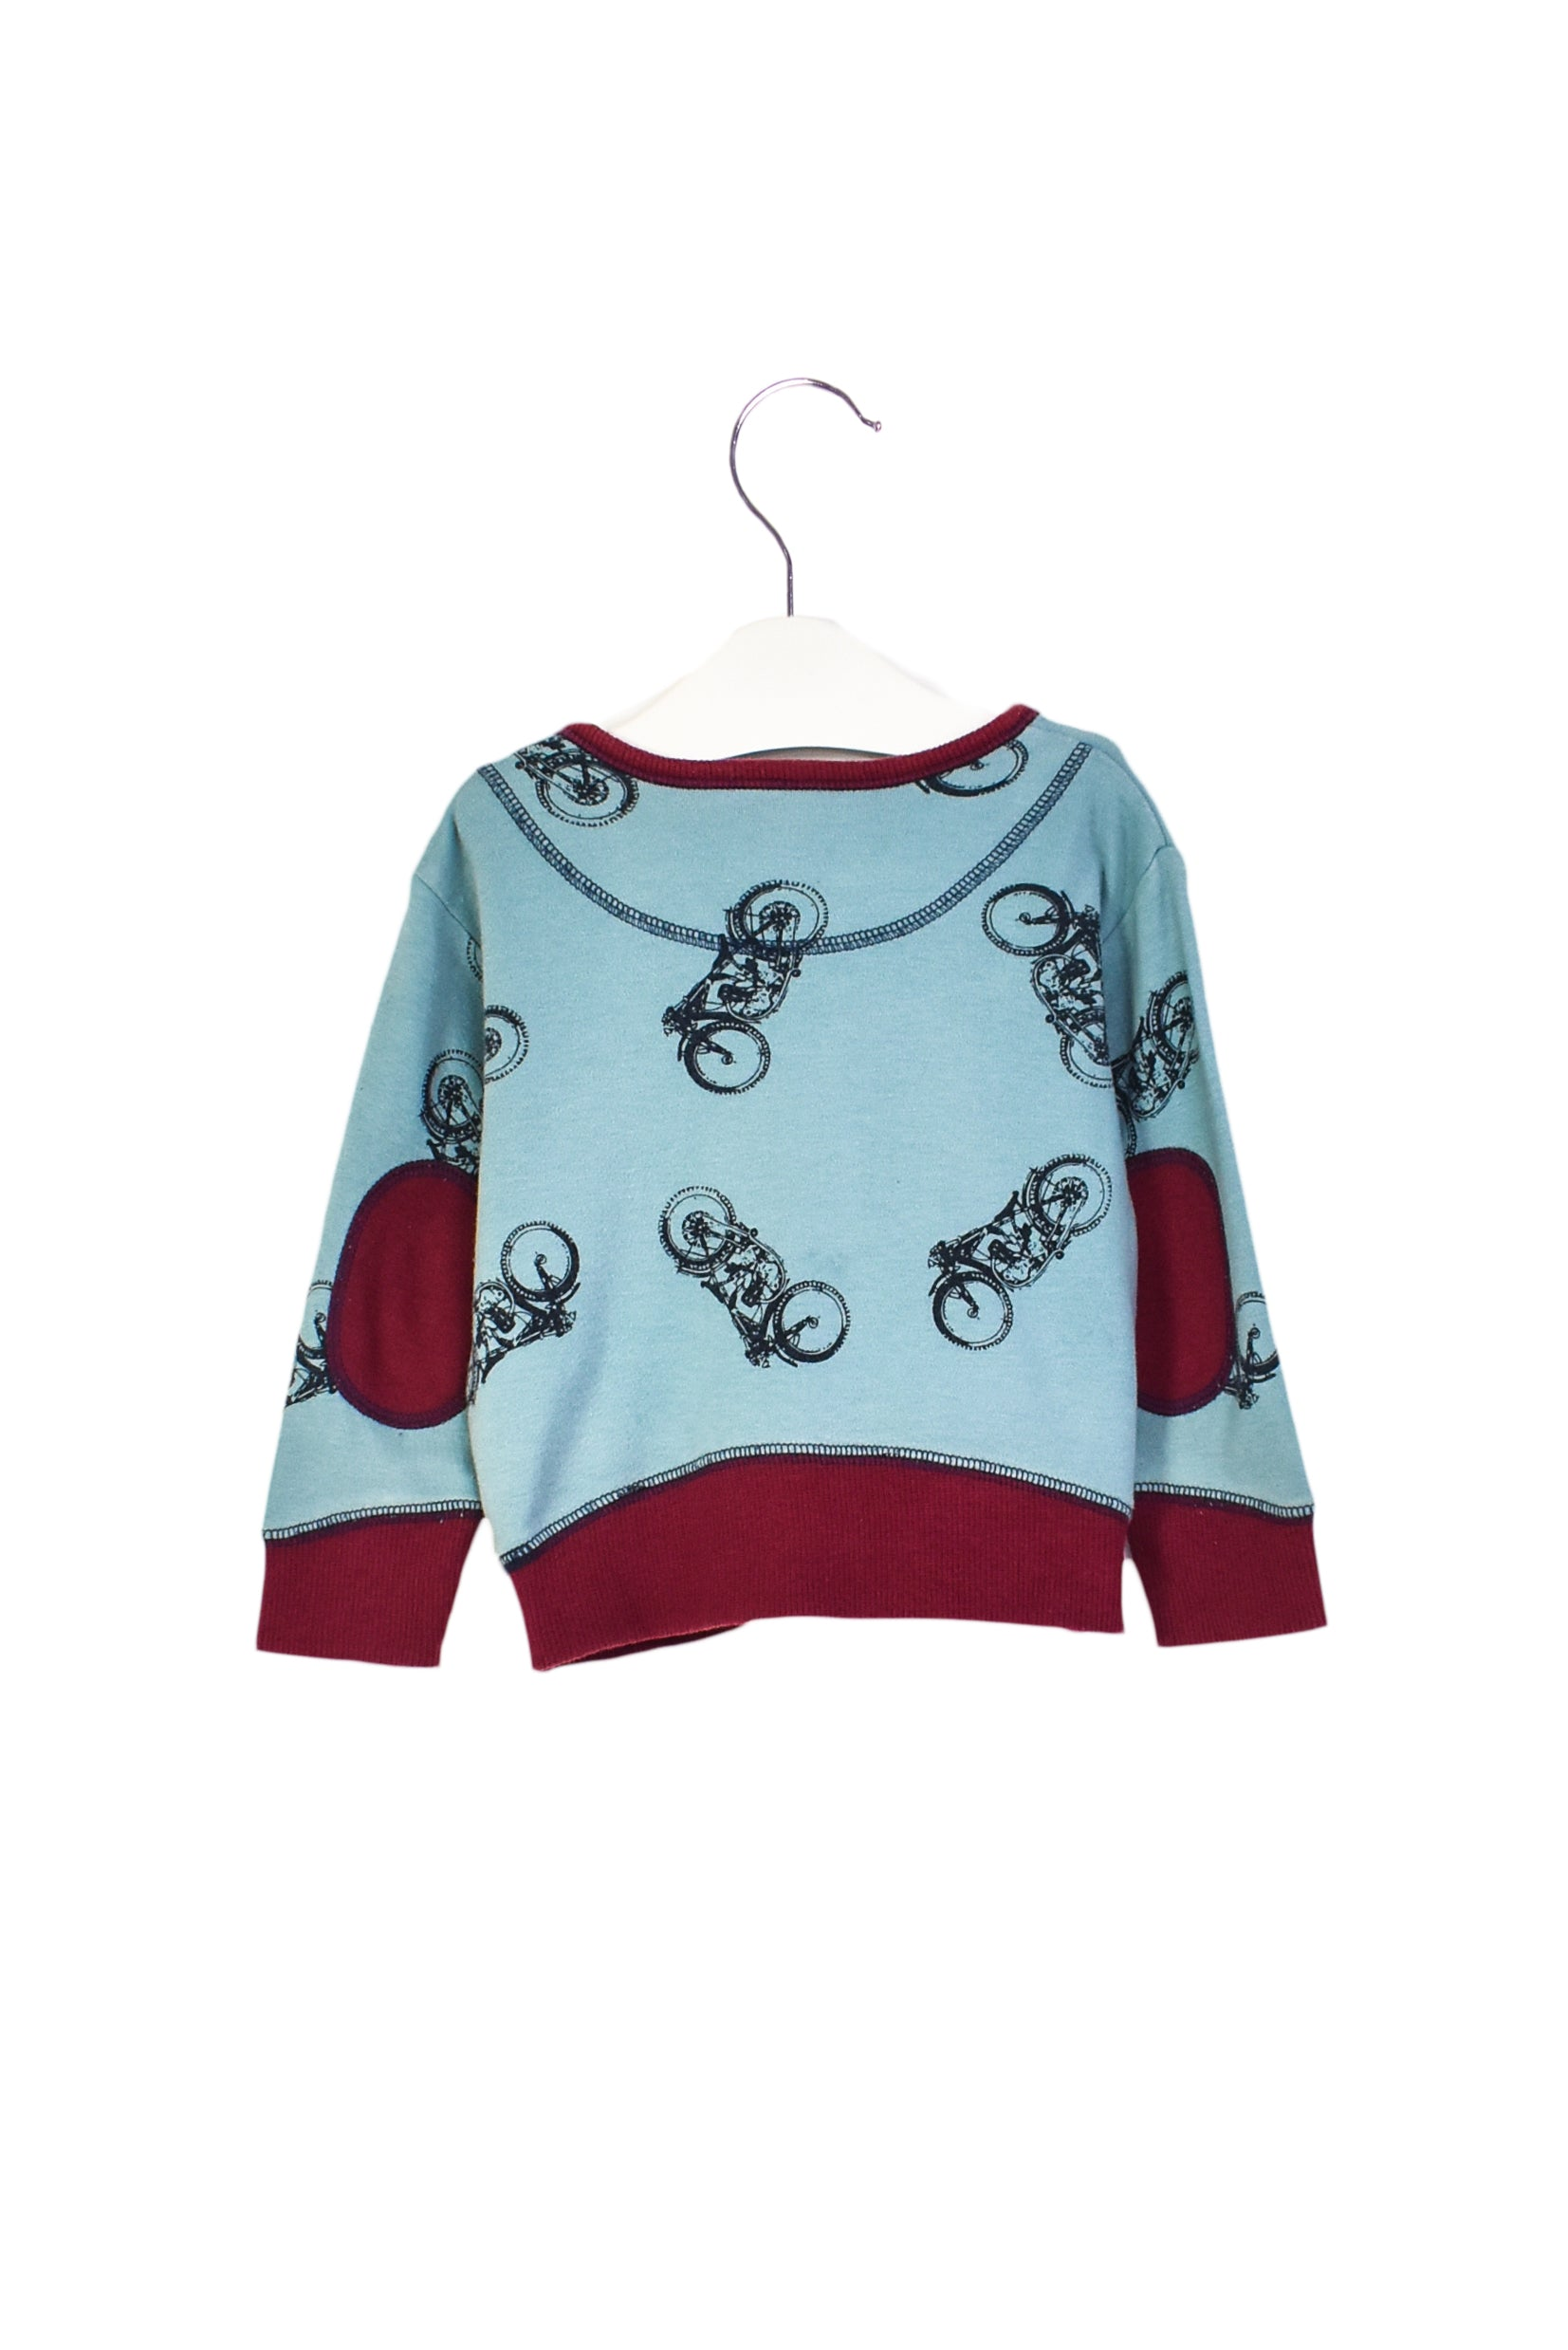 10013251 Joules Baby~Sweatshirt 9-12M at Retykle